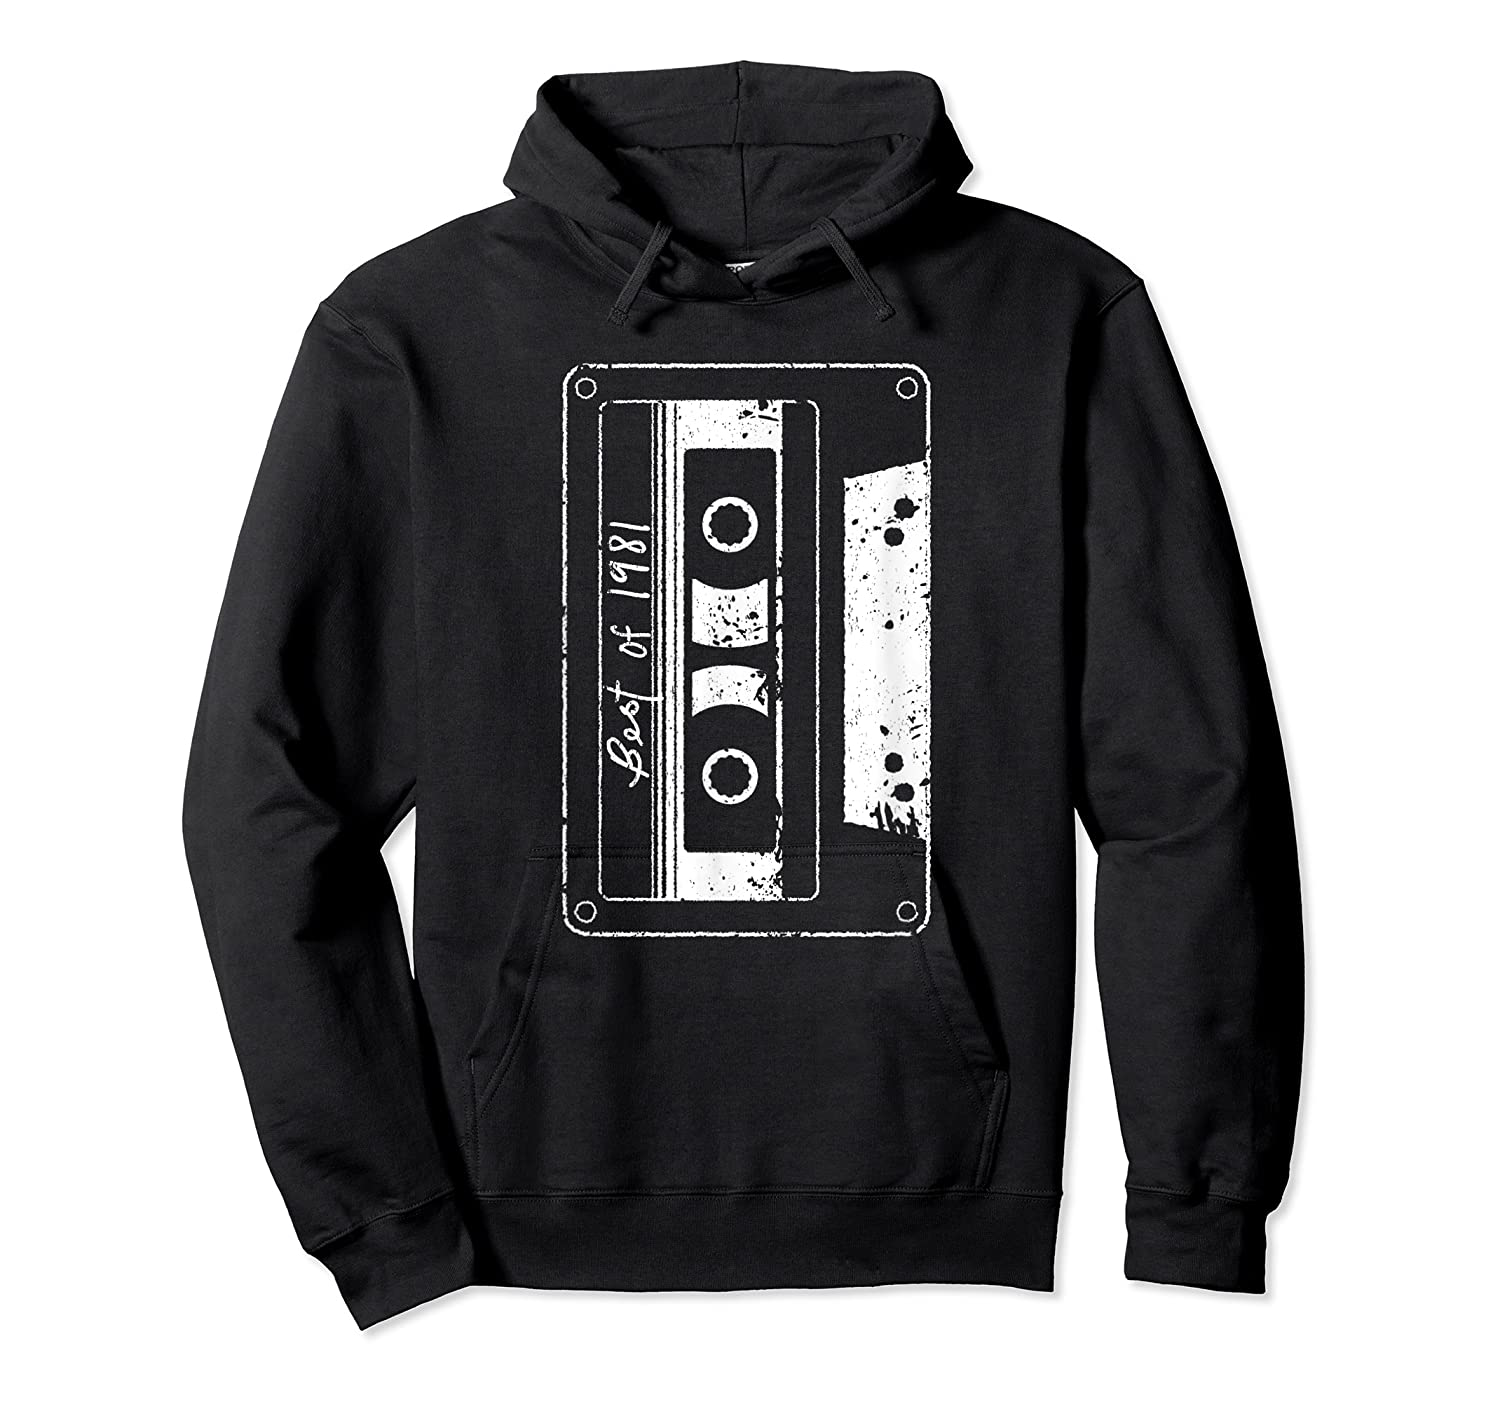 Vintage Best Of 1981 80s Tape Cassette Funny Dj Shirts Unisex Pullover Hoodie